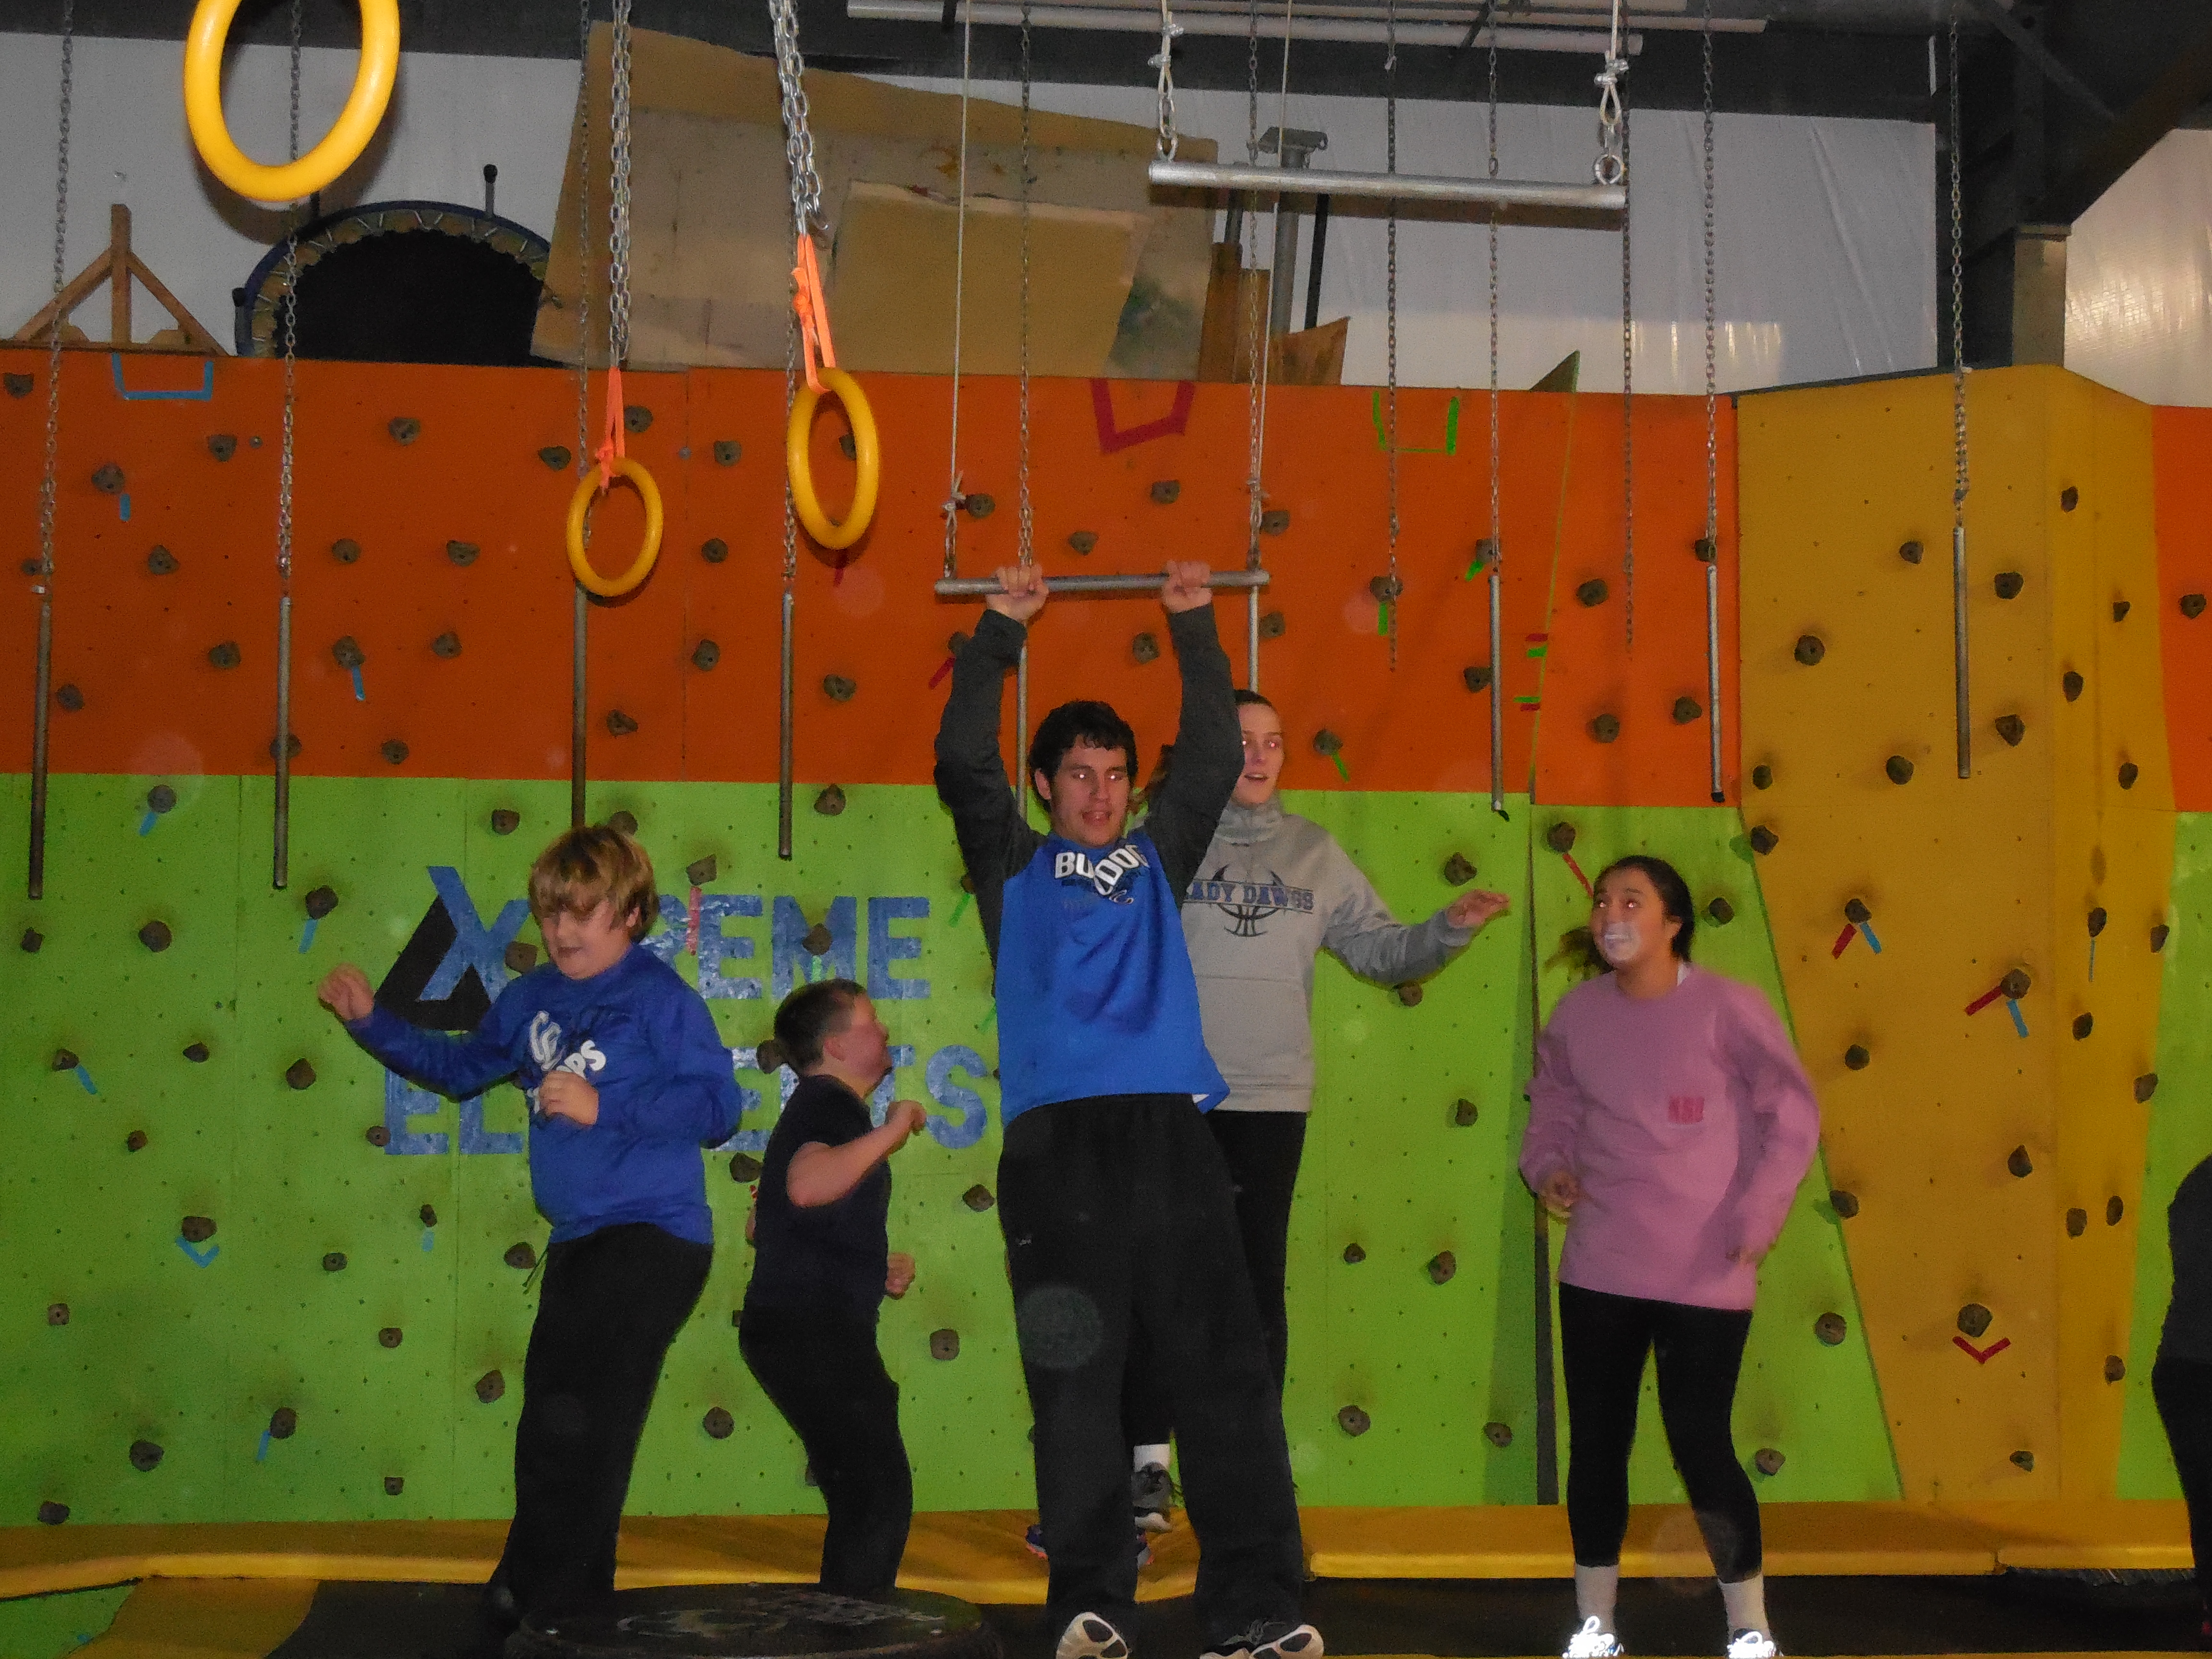 On December 14th, Clinton County Healthy Hometown Fitness Buddies were rewarded with a trip to the Urban Ninja Project gym in Lexington to work out and celebrate their hard work throughout the semester.